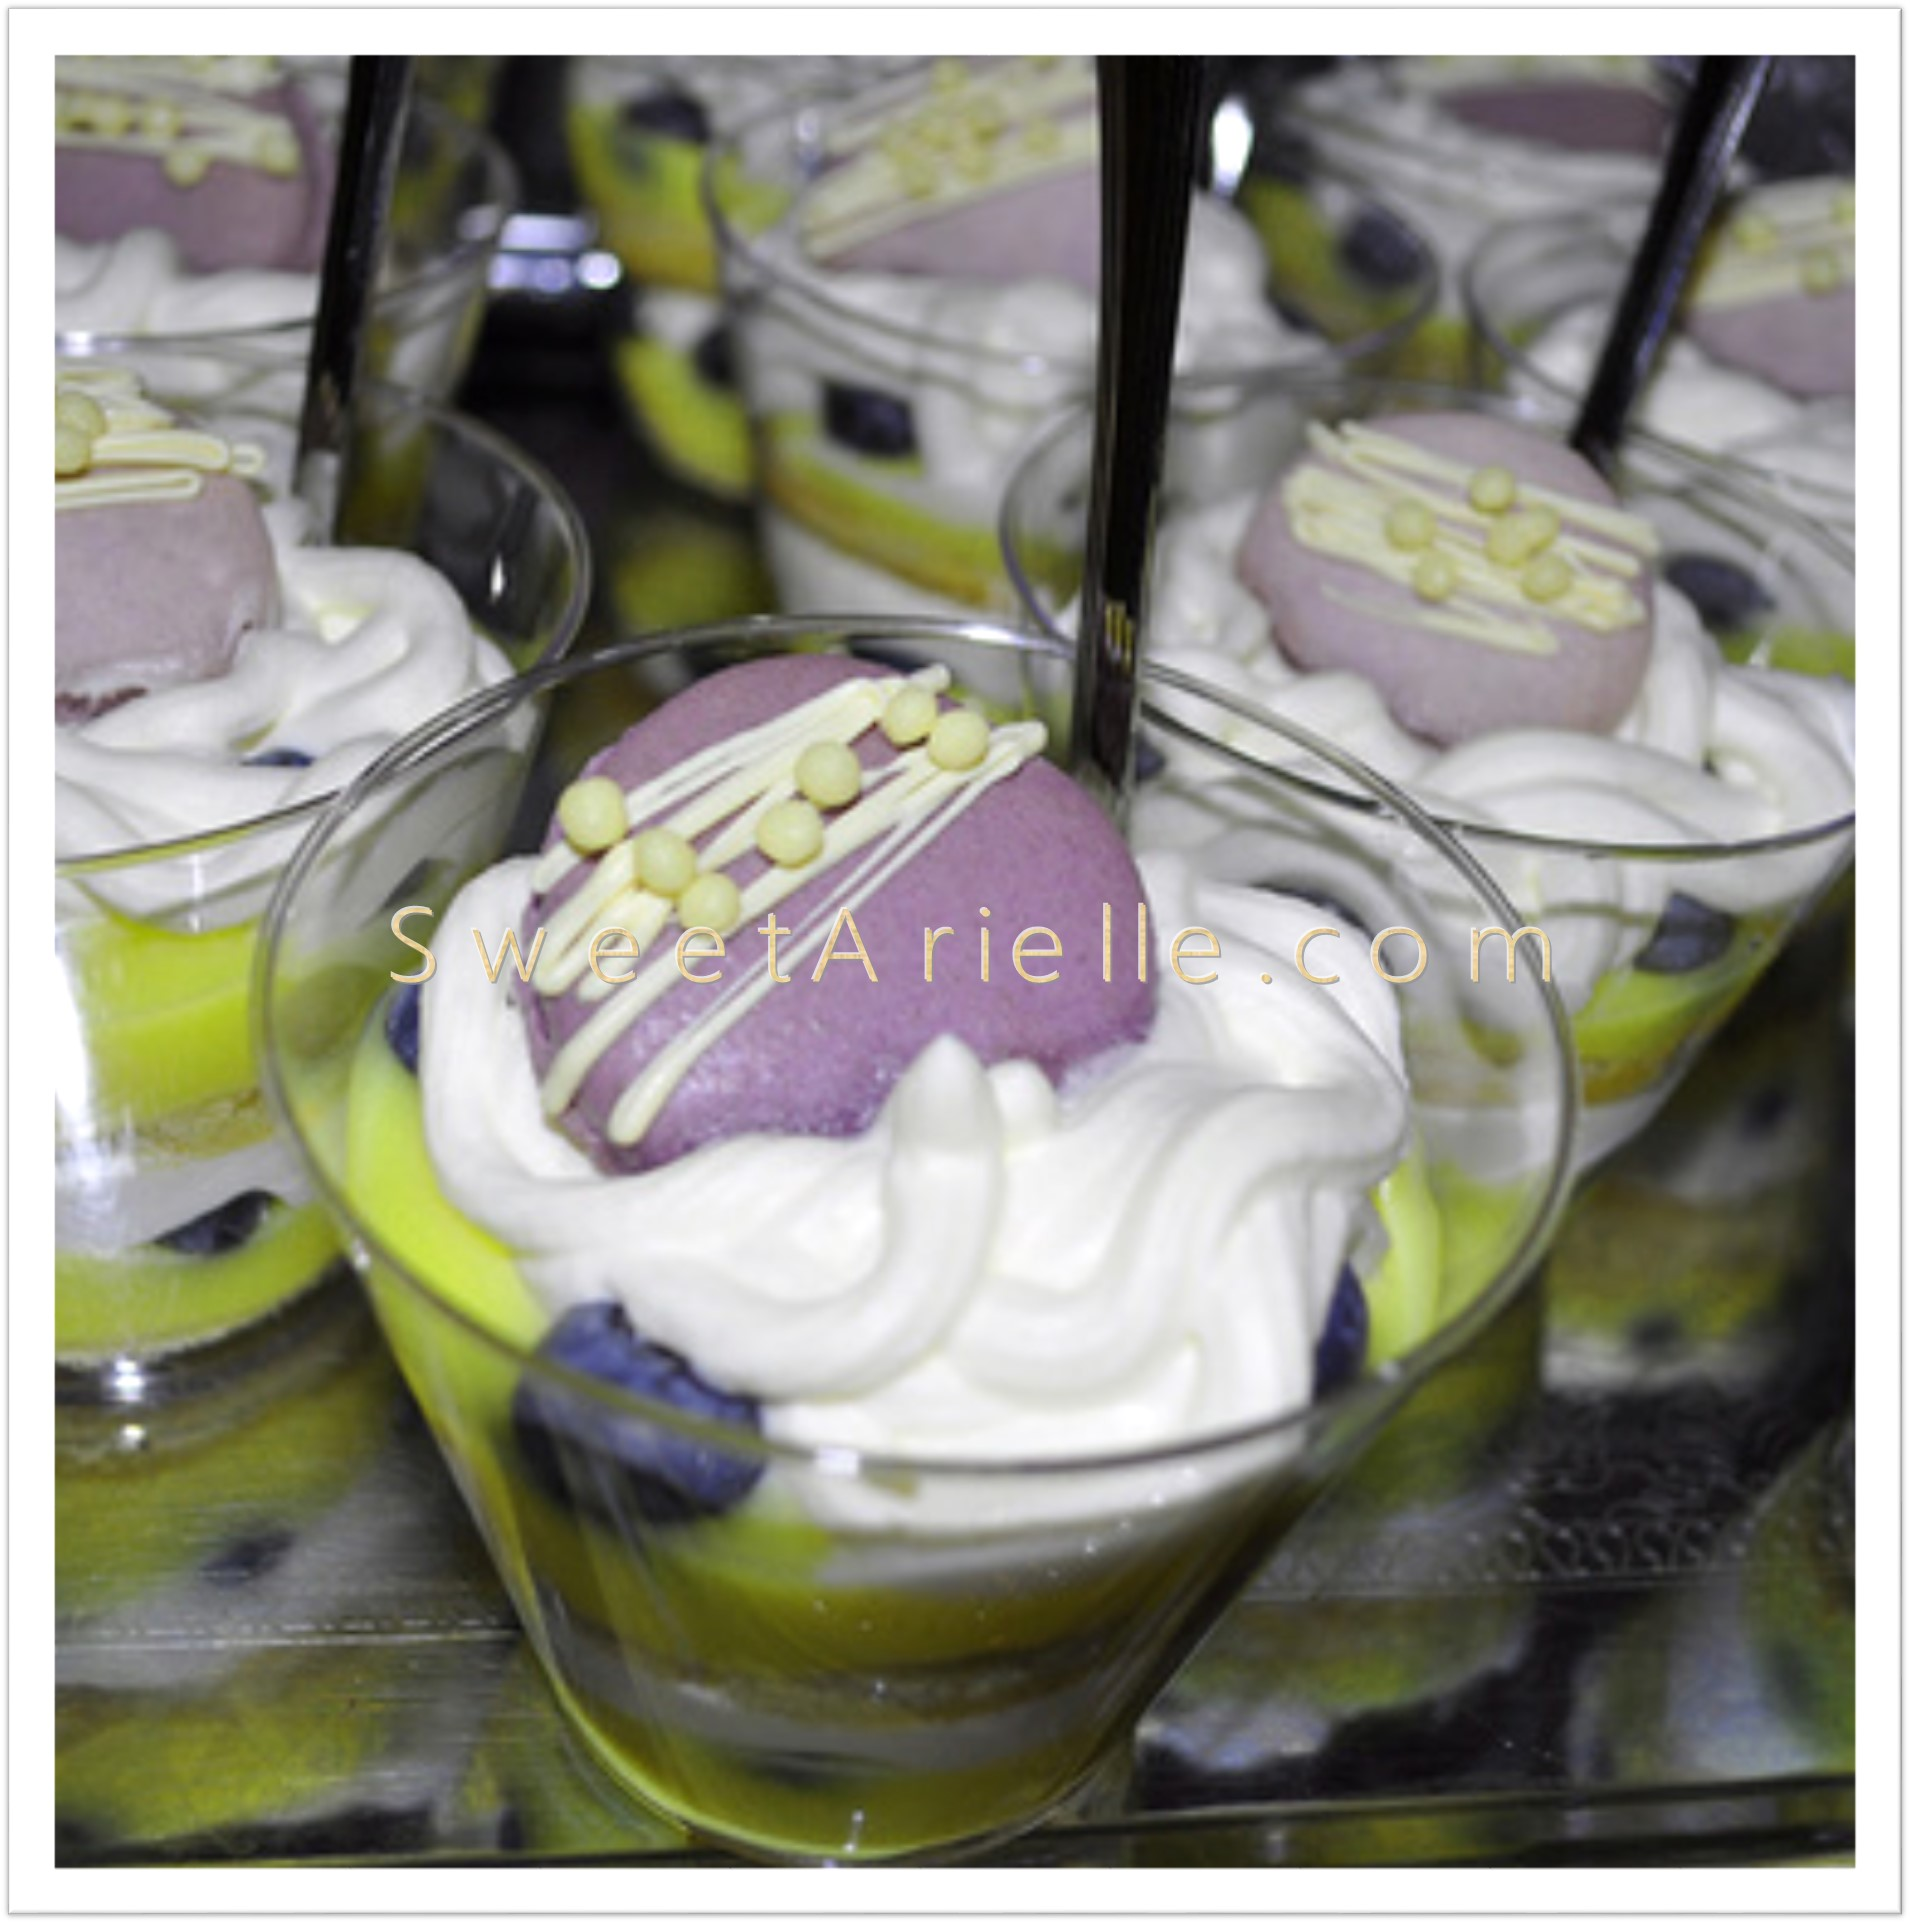 Blueberry Lemon Cup with Macaron 2.jpg